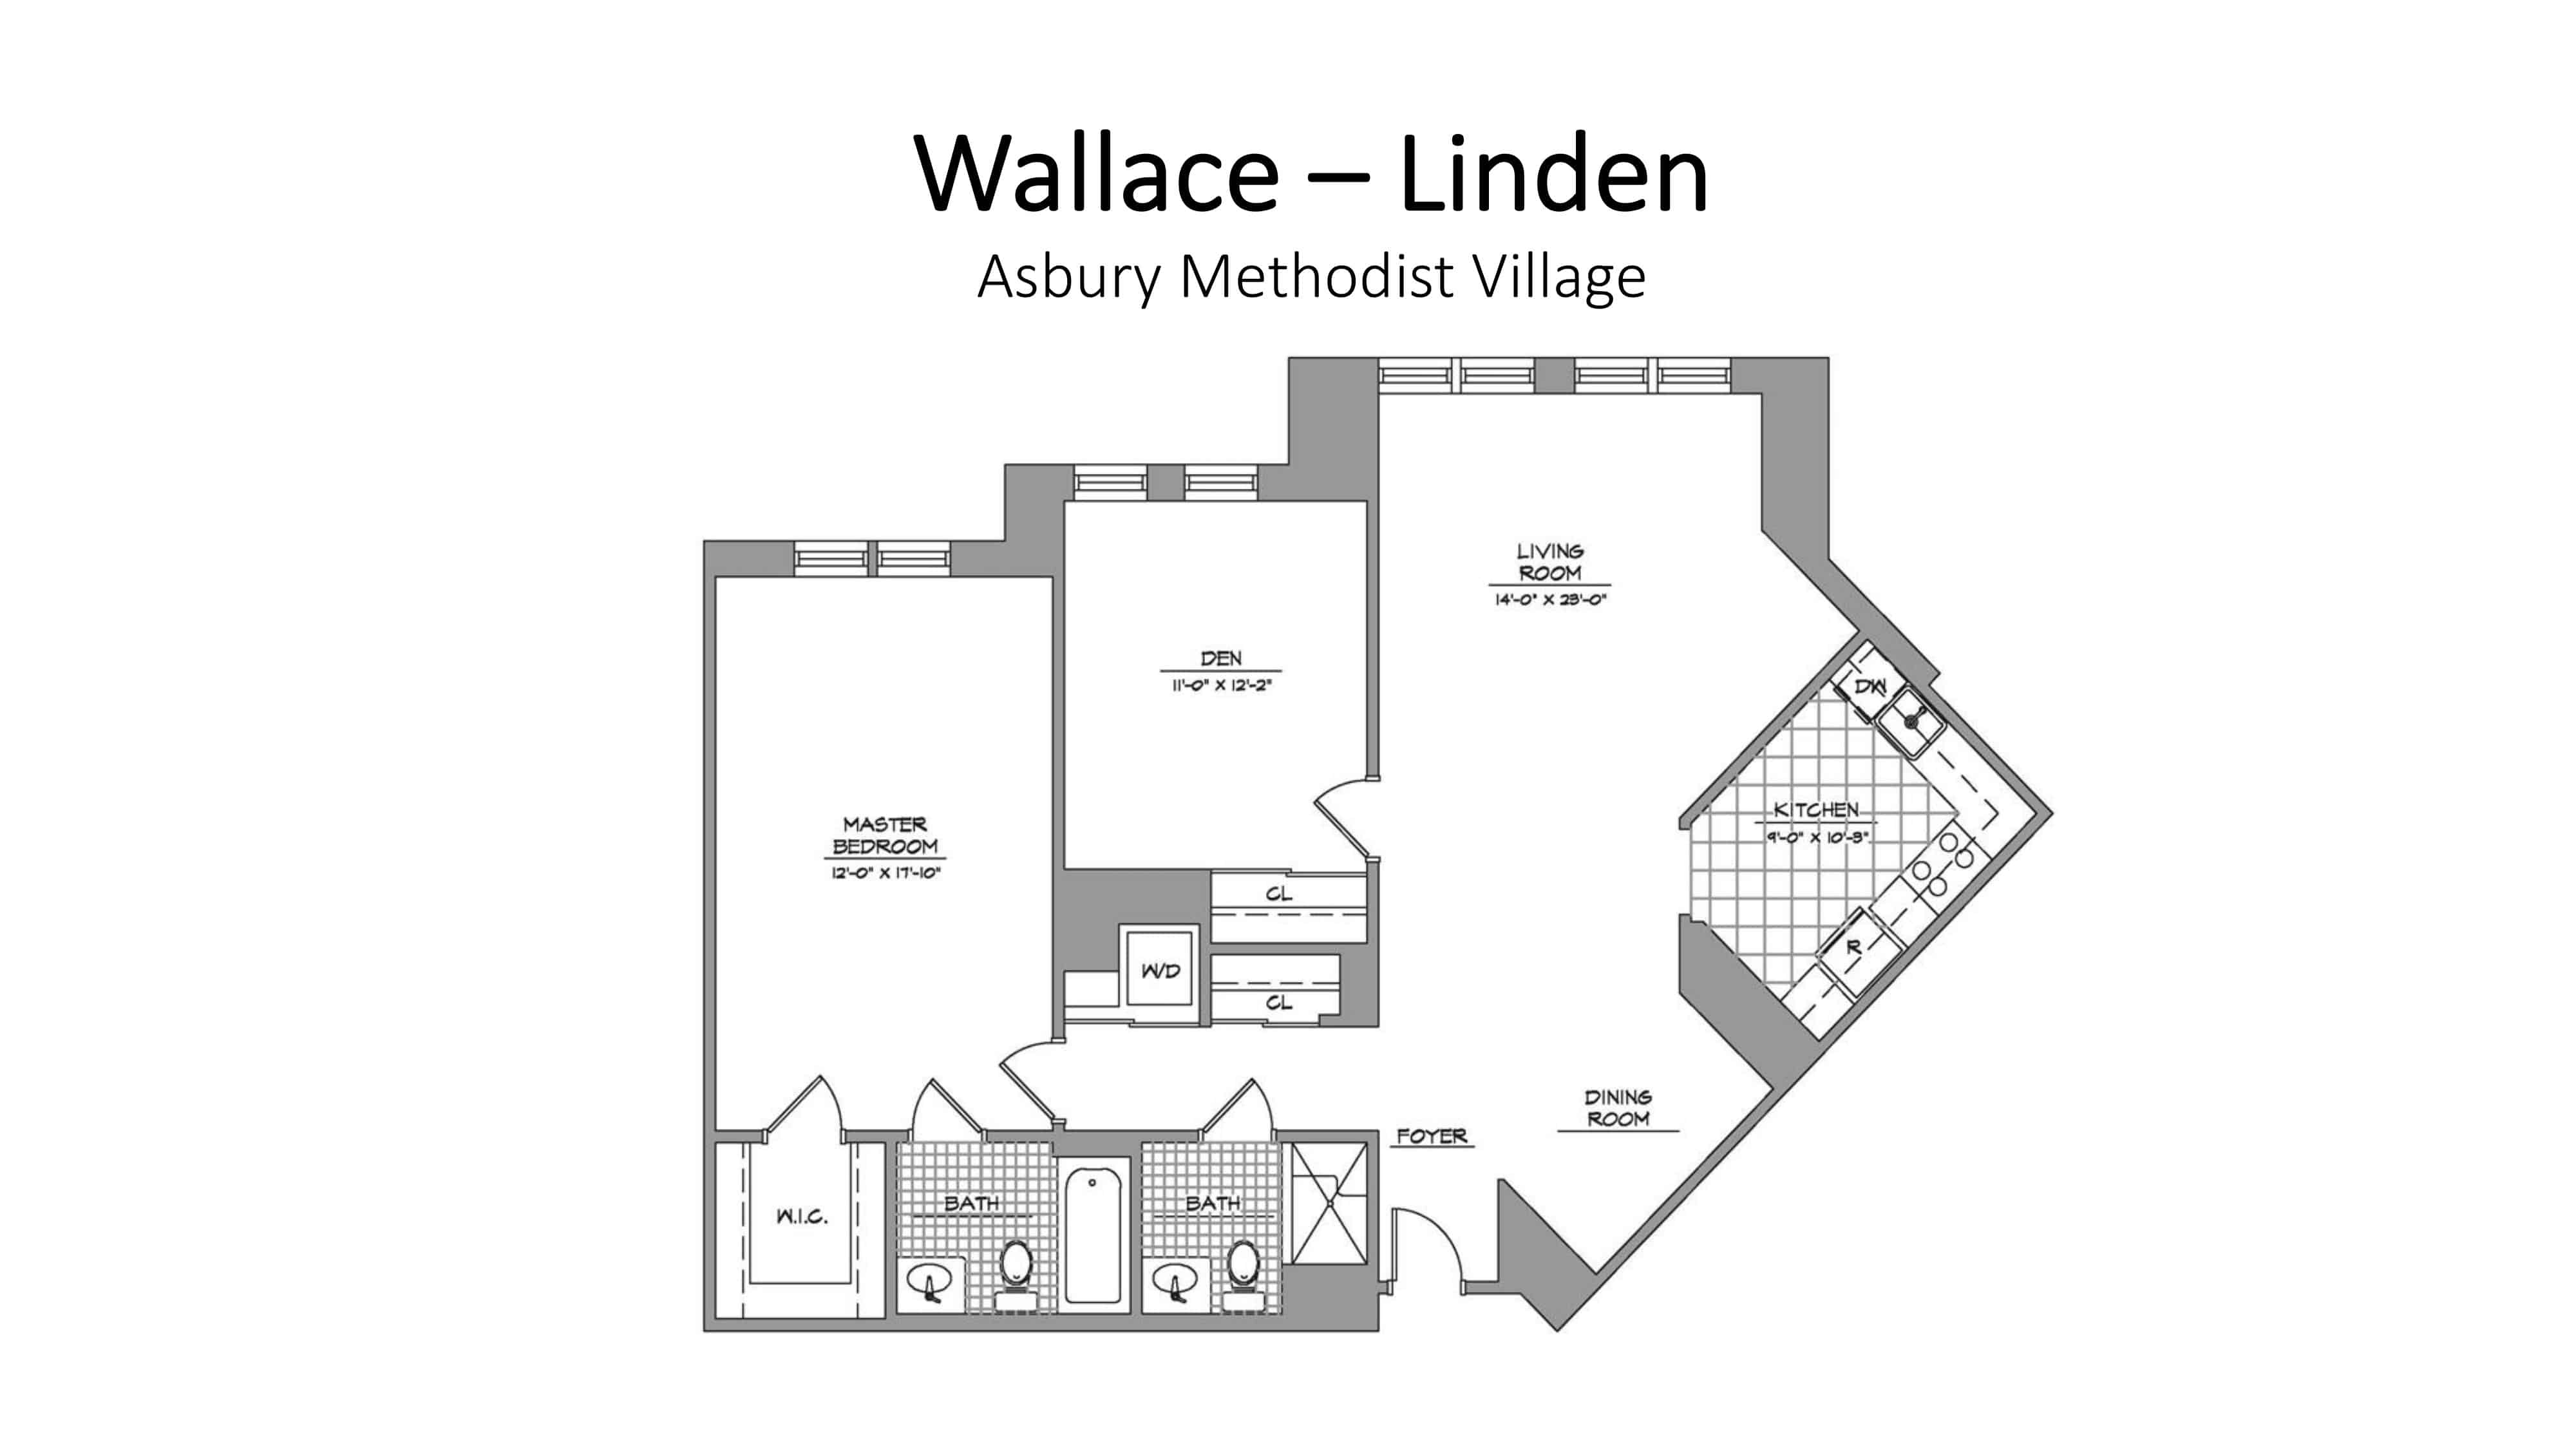 AMV Wallace Linden